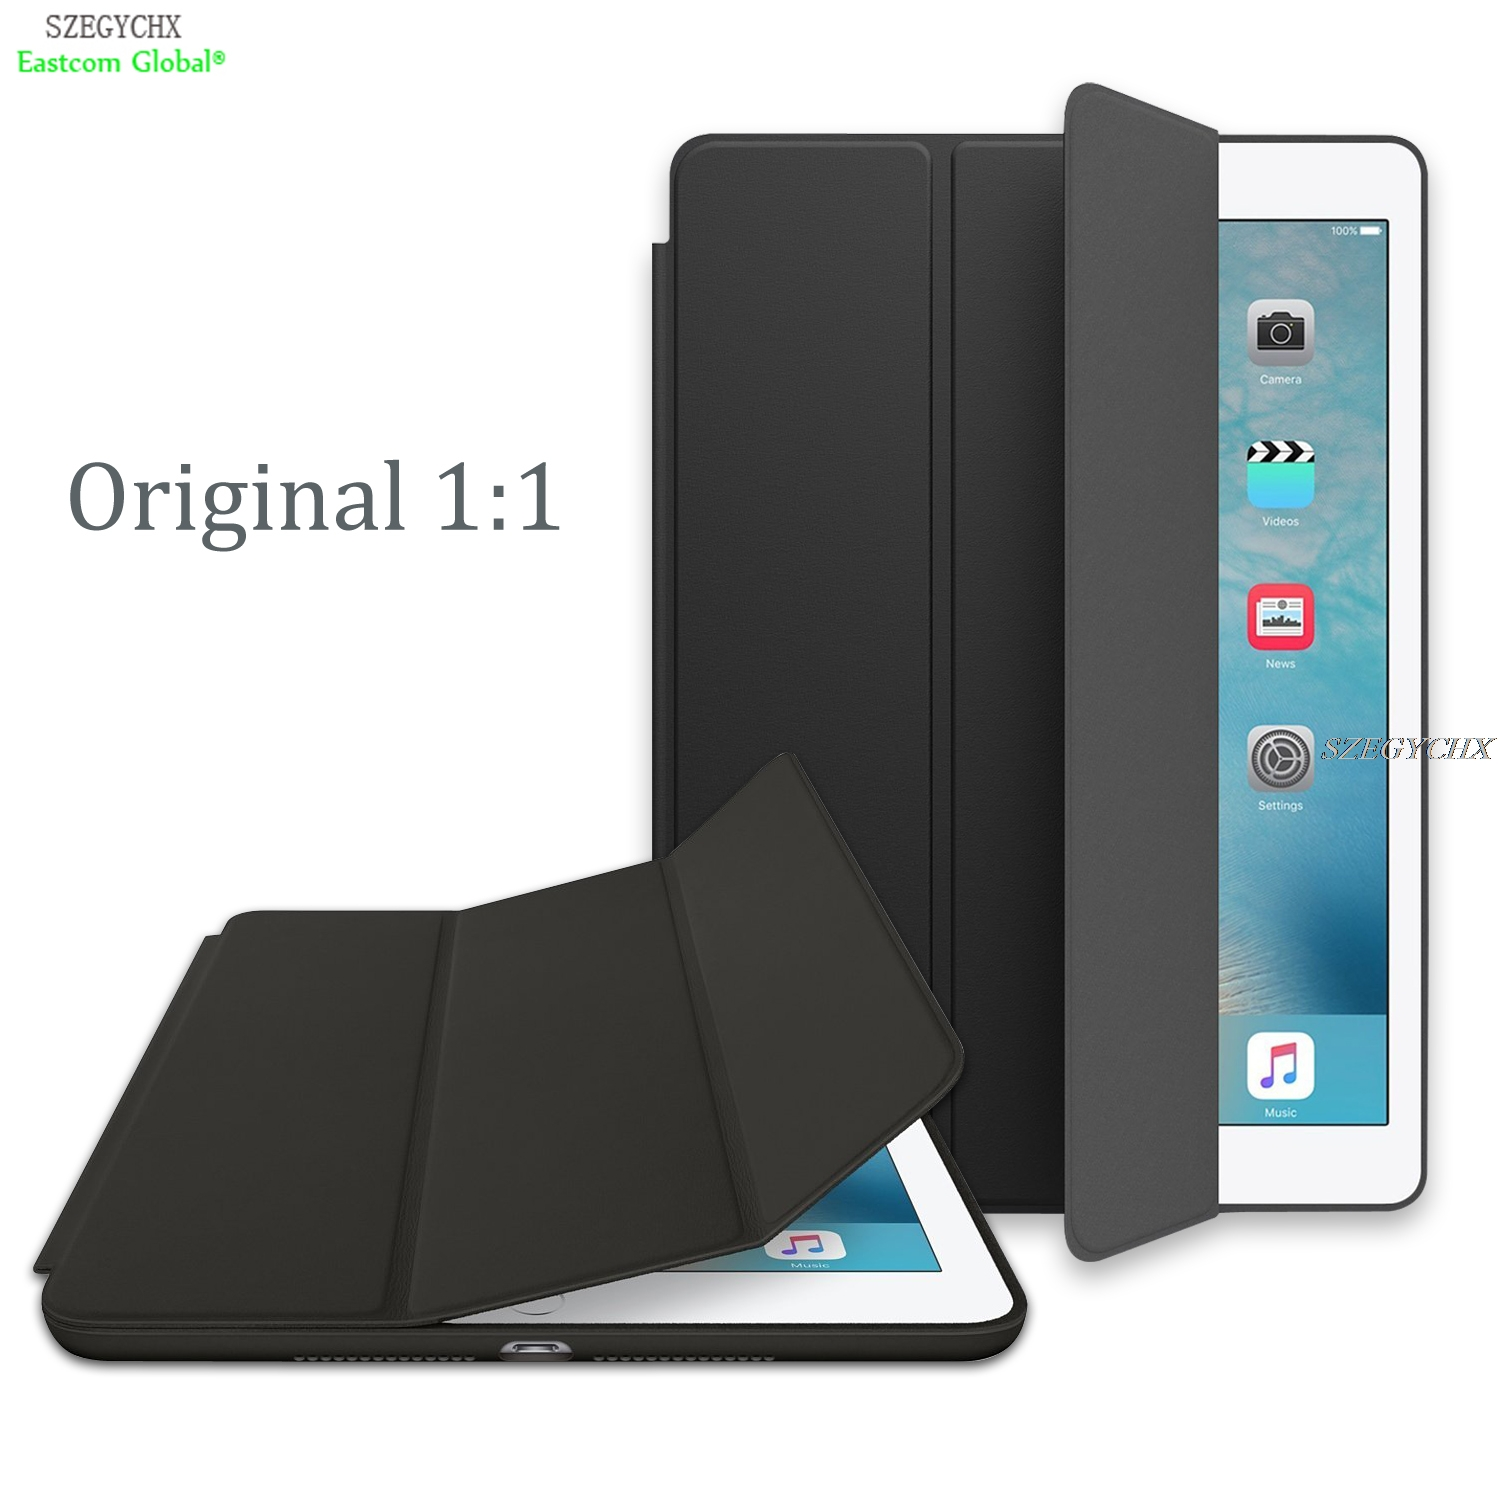 Case For apple iPad Mini 4 , SZEGYCHX Original 1:1 Ultra Slim Smart Cover Stand For ipad case Auto Wake / Sleep with LOGO цена